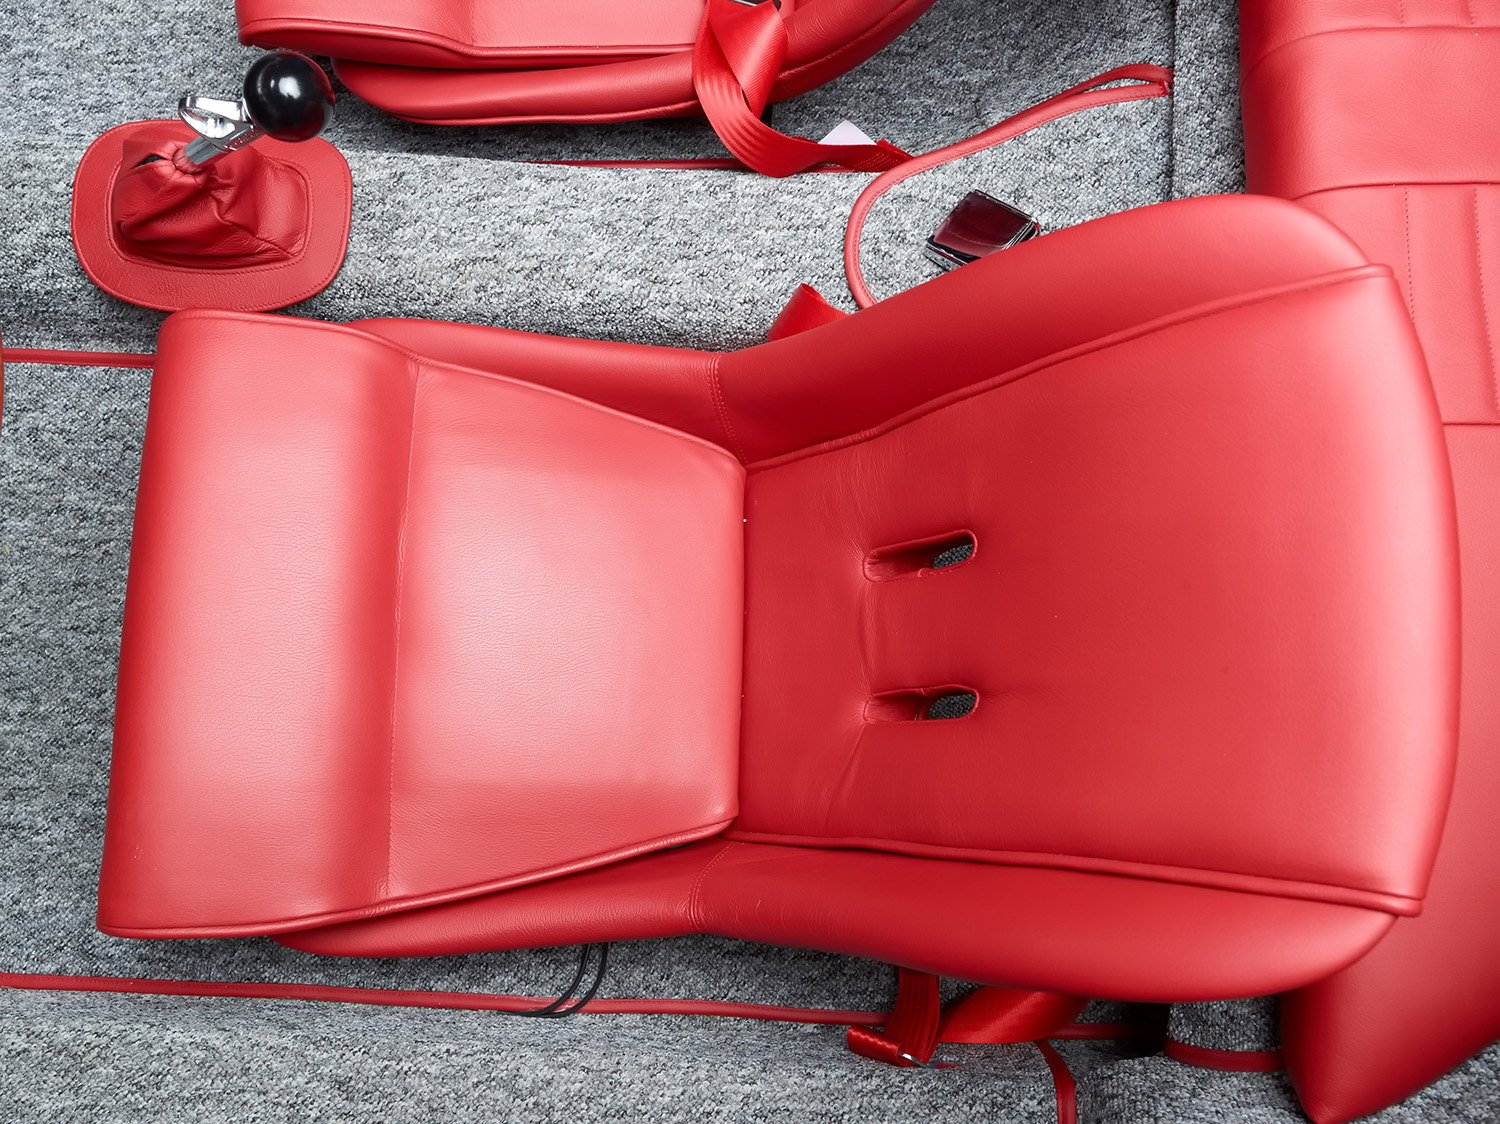 RCH 356 silver grey red seats